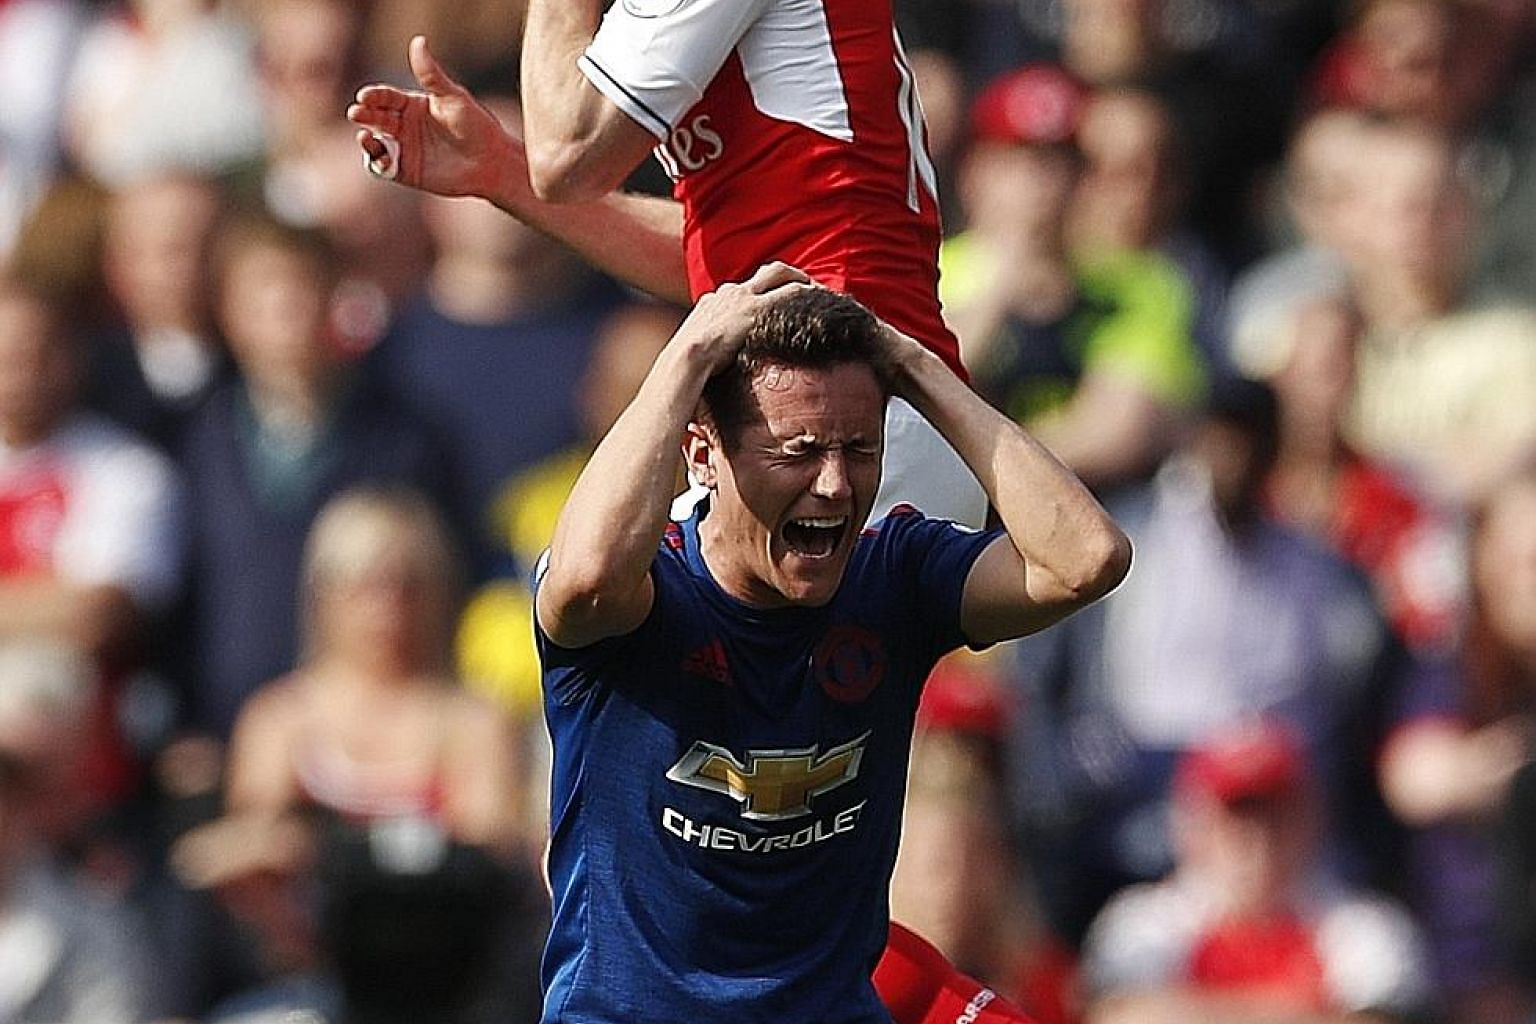 Manchester United's Ander Herrera in pain after clashing heads with Arsenal's Nacho Monreal in their Premier League game earlier this month. Dr John Leddy says that each athlete should be checked and treated on an individual basis, with extra care ne